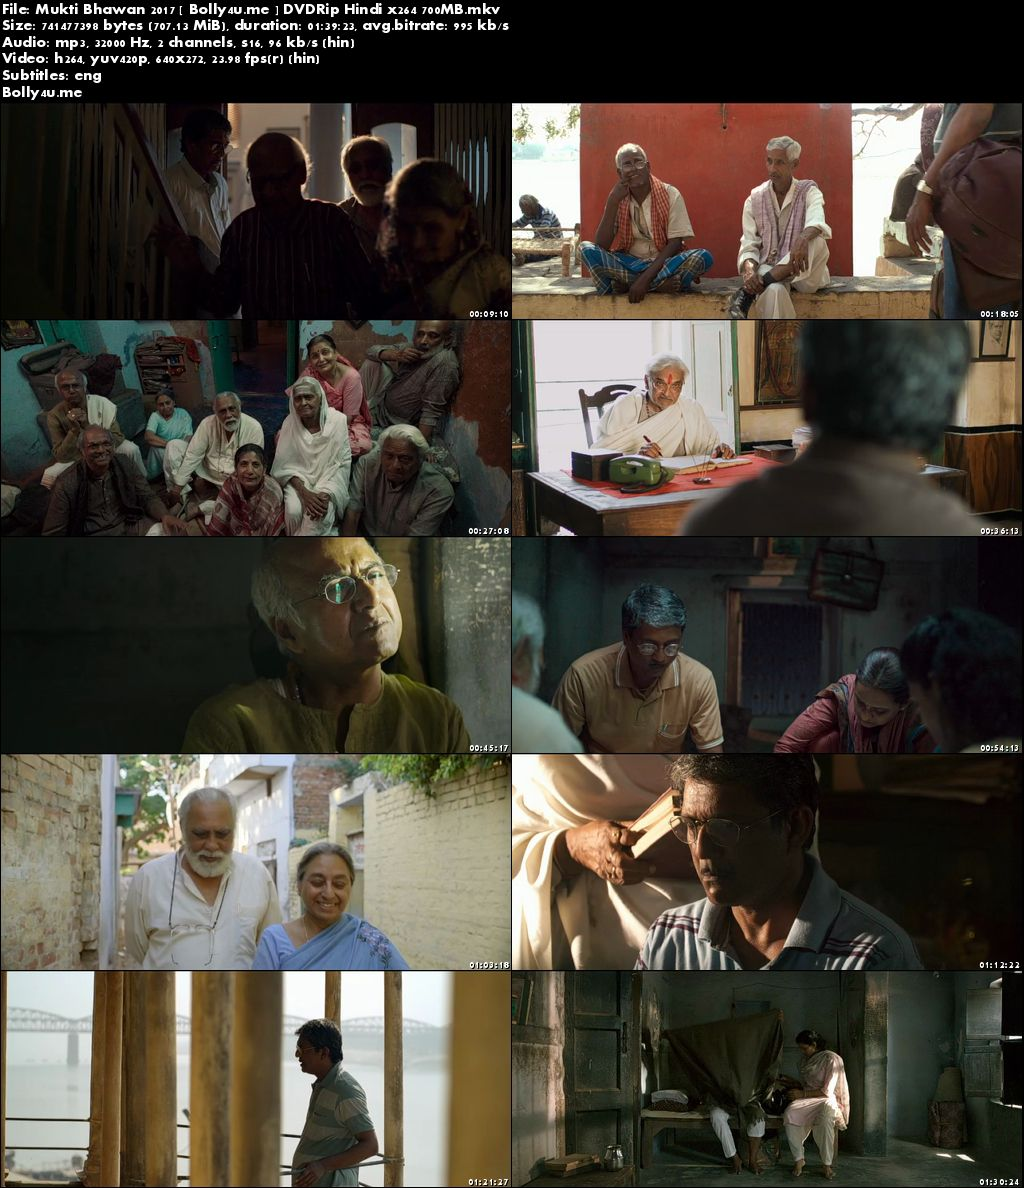 Mukti Bhawan 2017 DVDRip 700MB Hindi x264 ESub Download